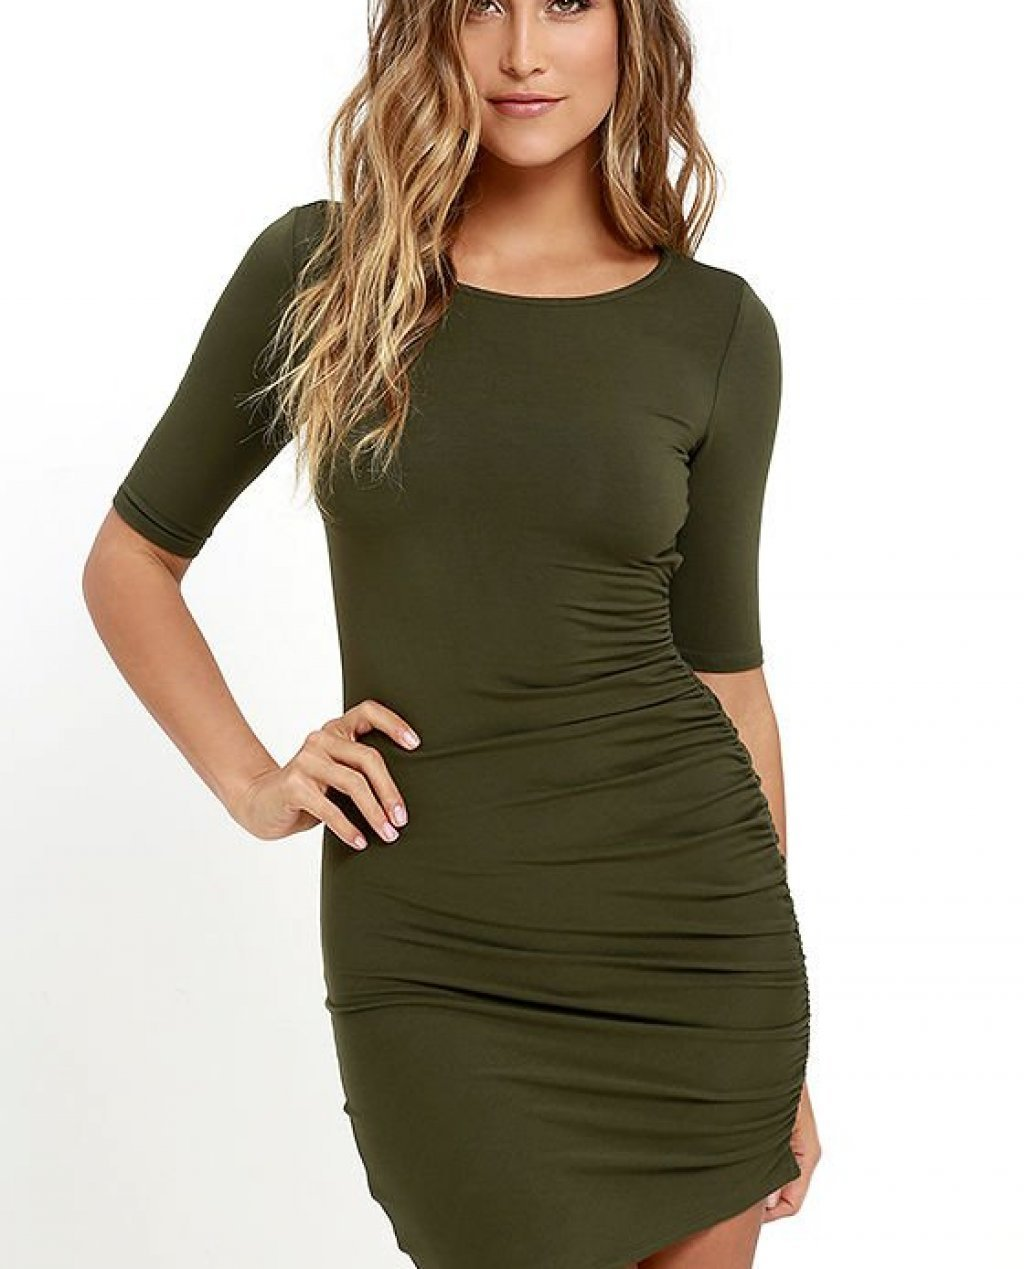 Steal Your Attention Olive Green Bodycon Dress